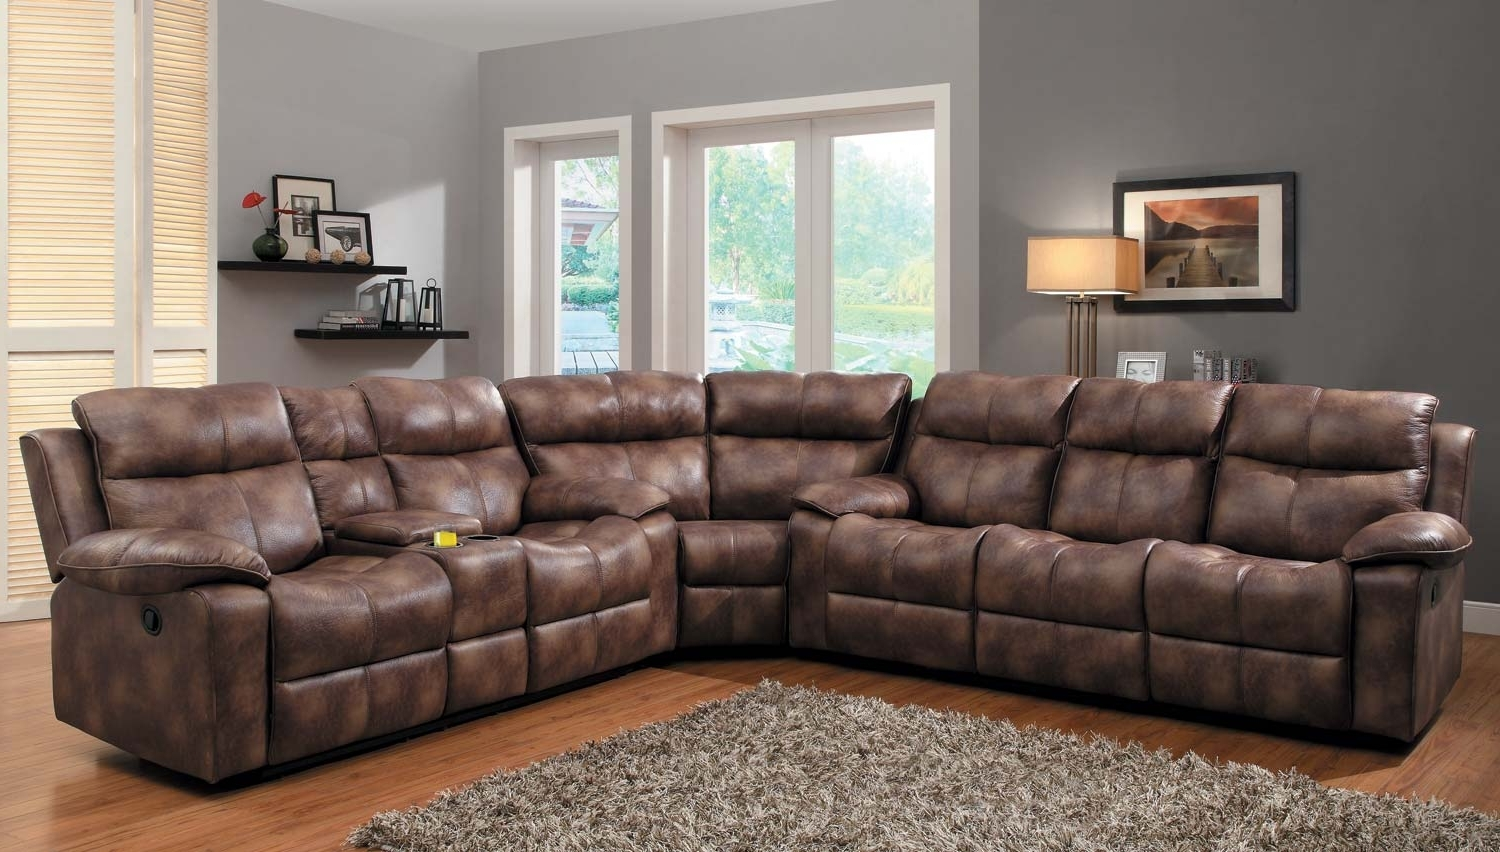 Current Curved Sectional Sofas With Recliner Within Furniture: Inspiring Reclining Sectional For Living Room Furniture (View 4 of 20)